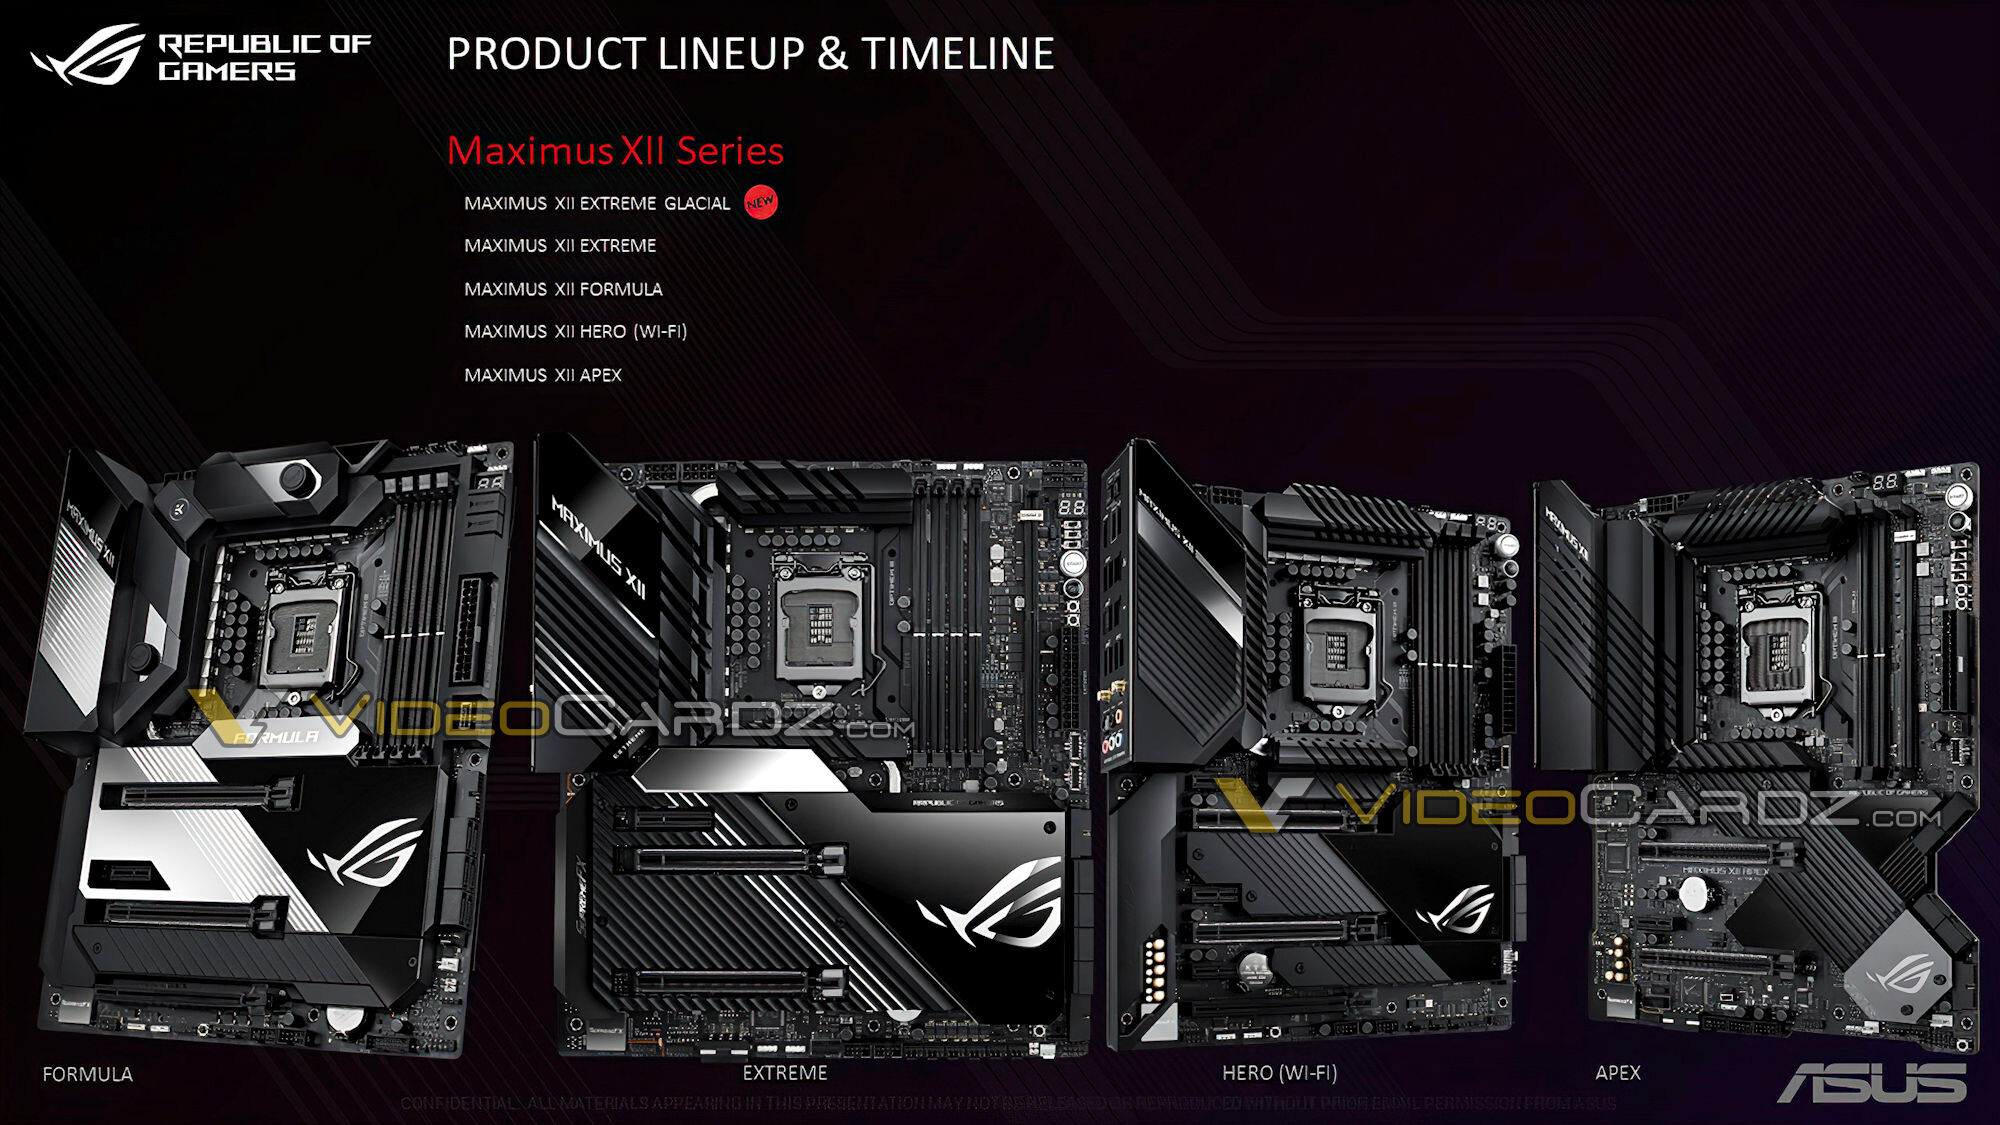 ASUS Z490 Maximus XII serie